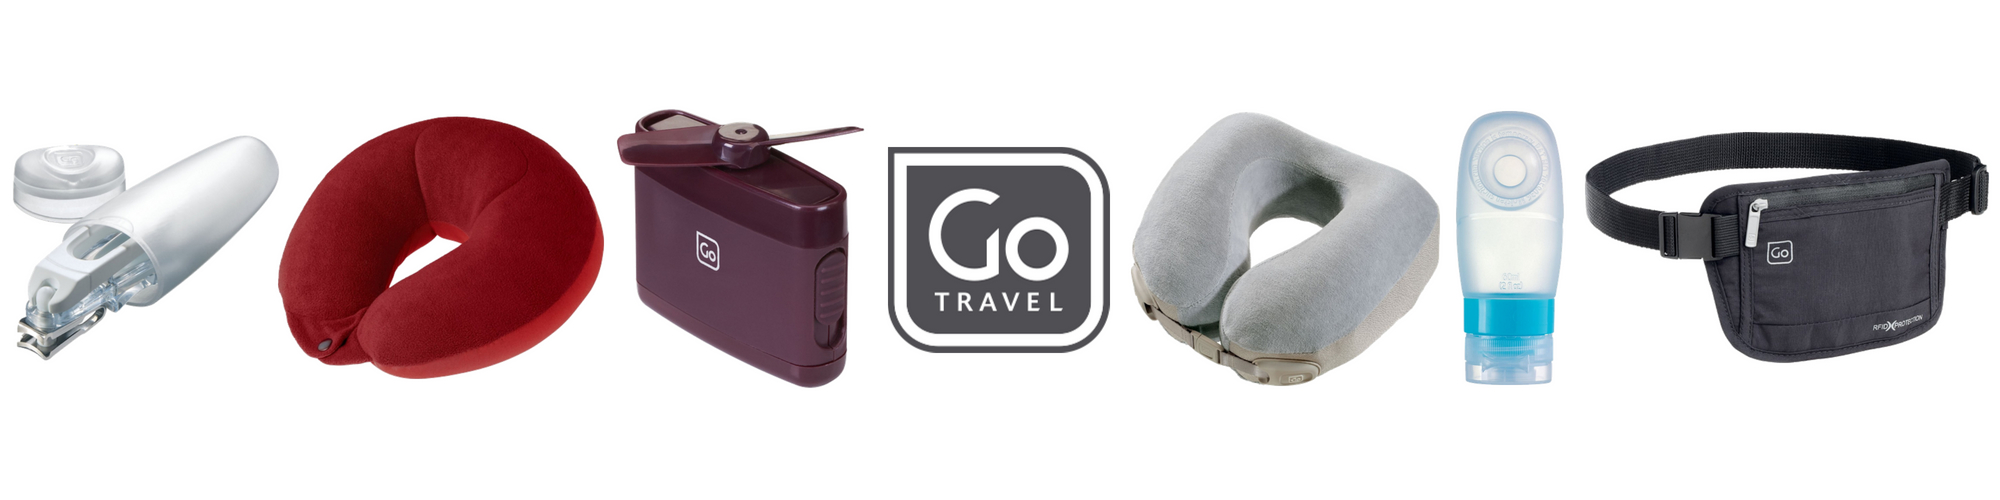 Go Travel - TravelSmarts